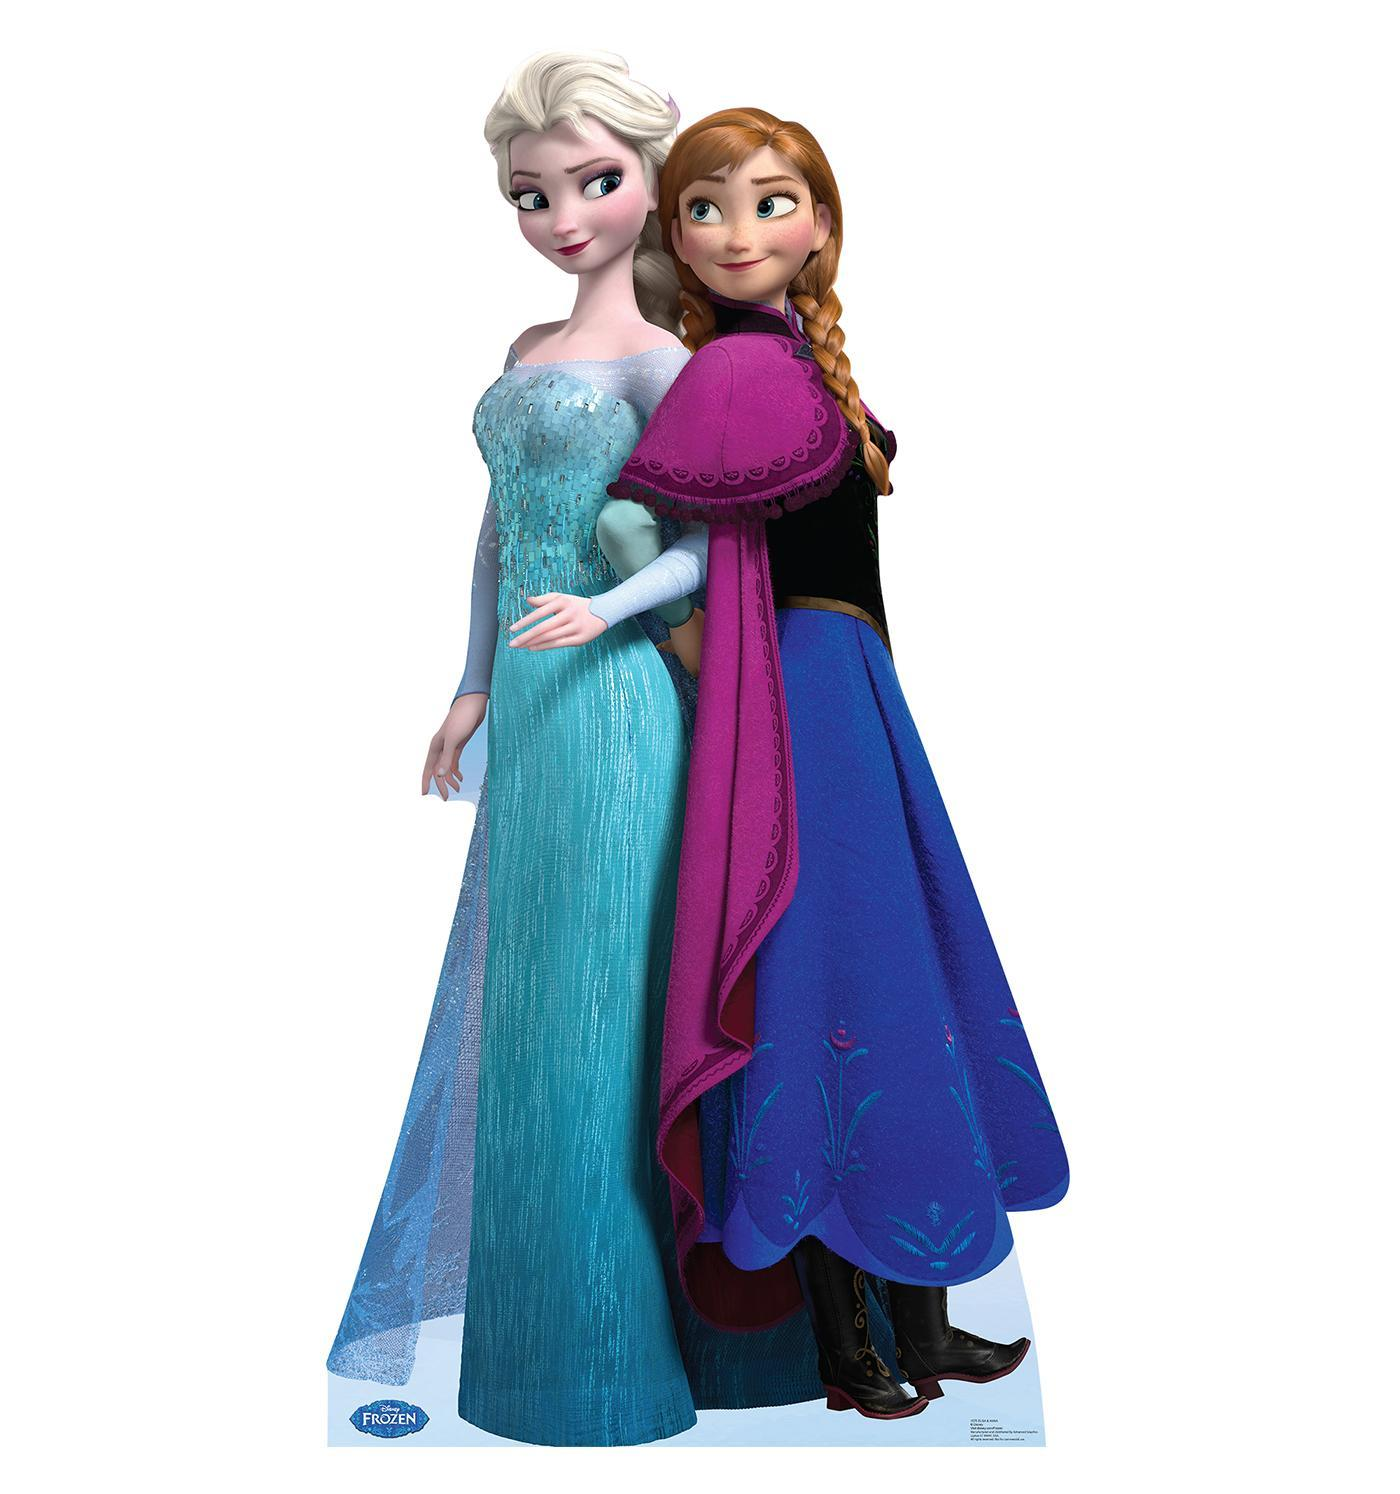 Who is better of Anna and Elsa?